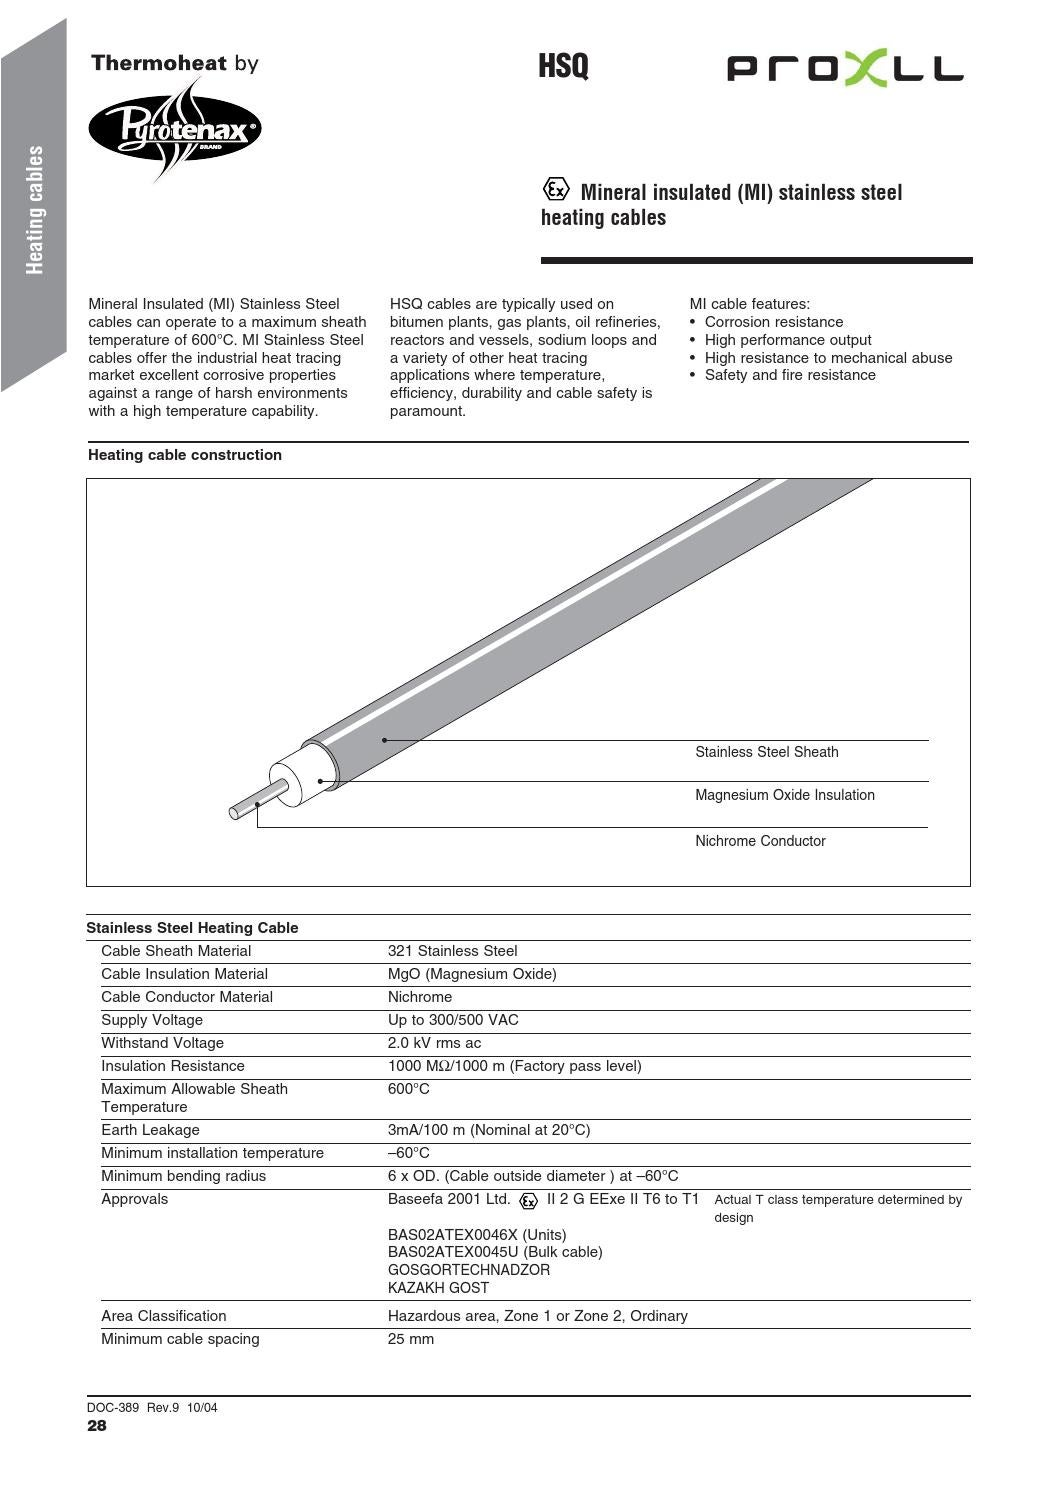 Magnesium Oxide Cable : Mineralisolert seriemotstand hsq by proxll issuu